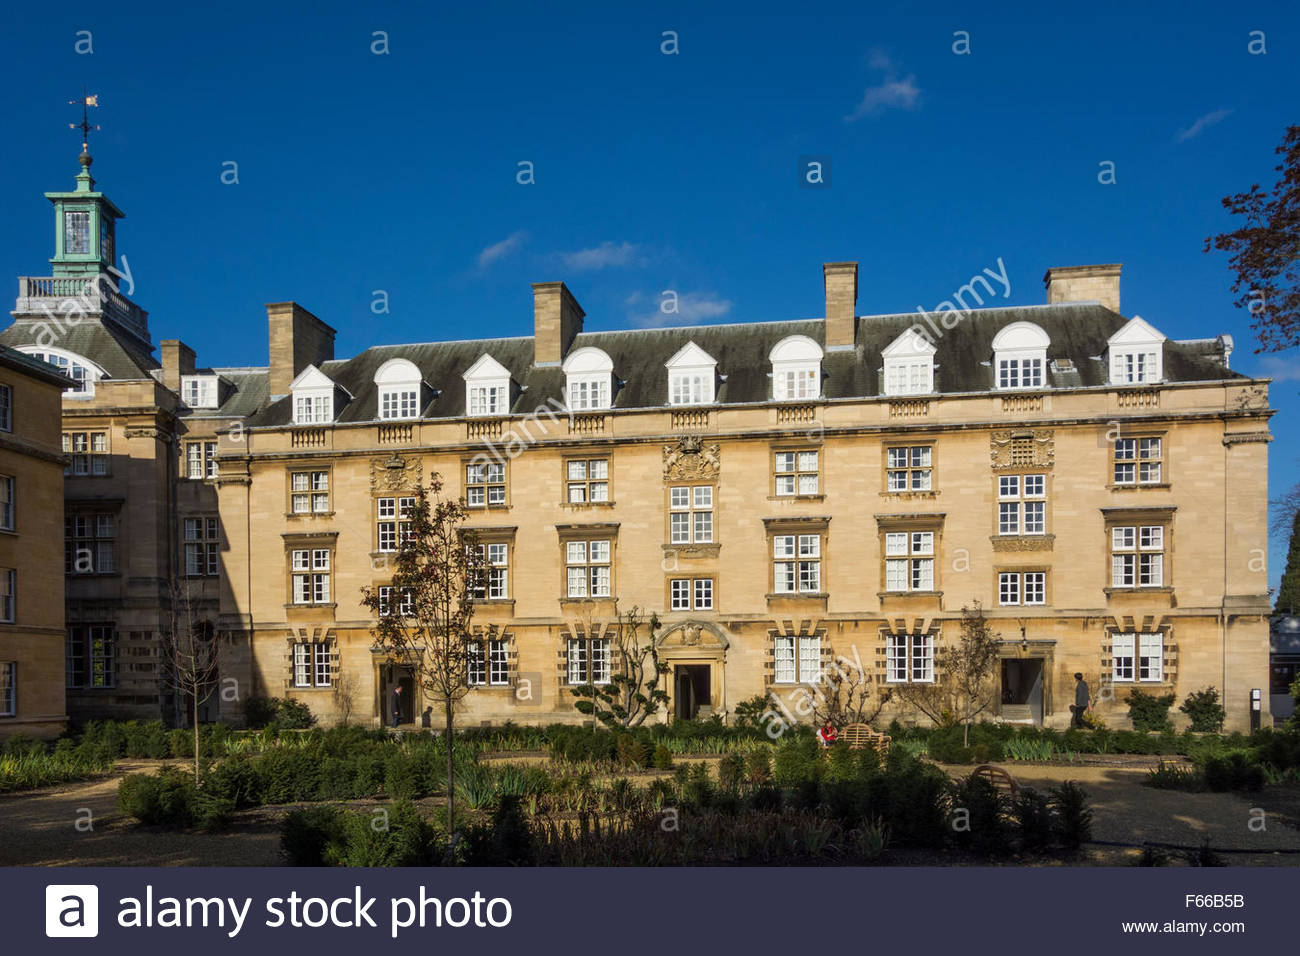 Third Court, Christ's College, Cambridge, England, UK - Stock Image